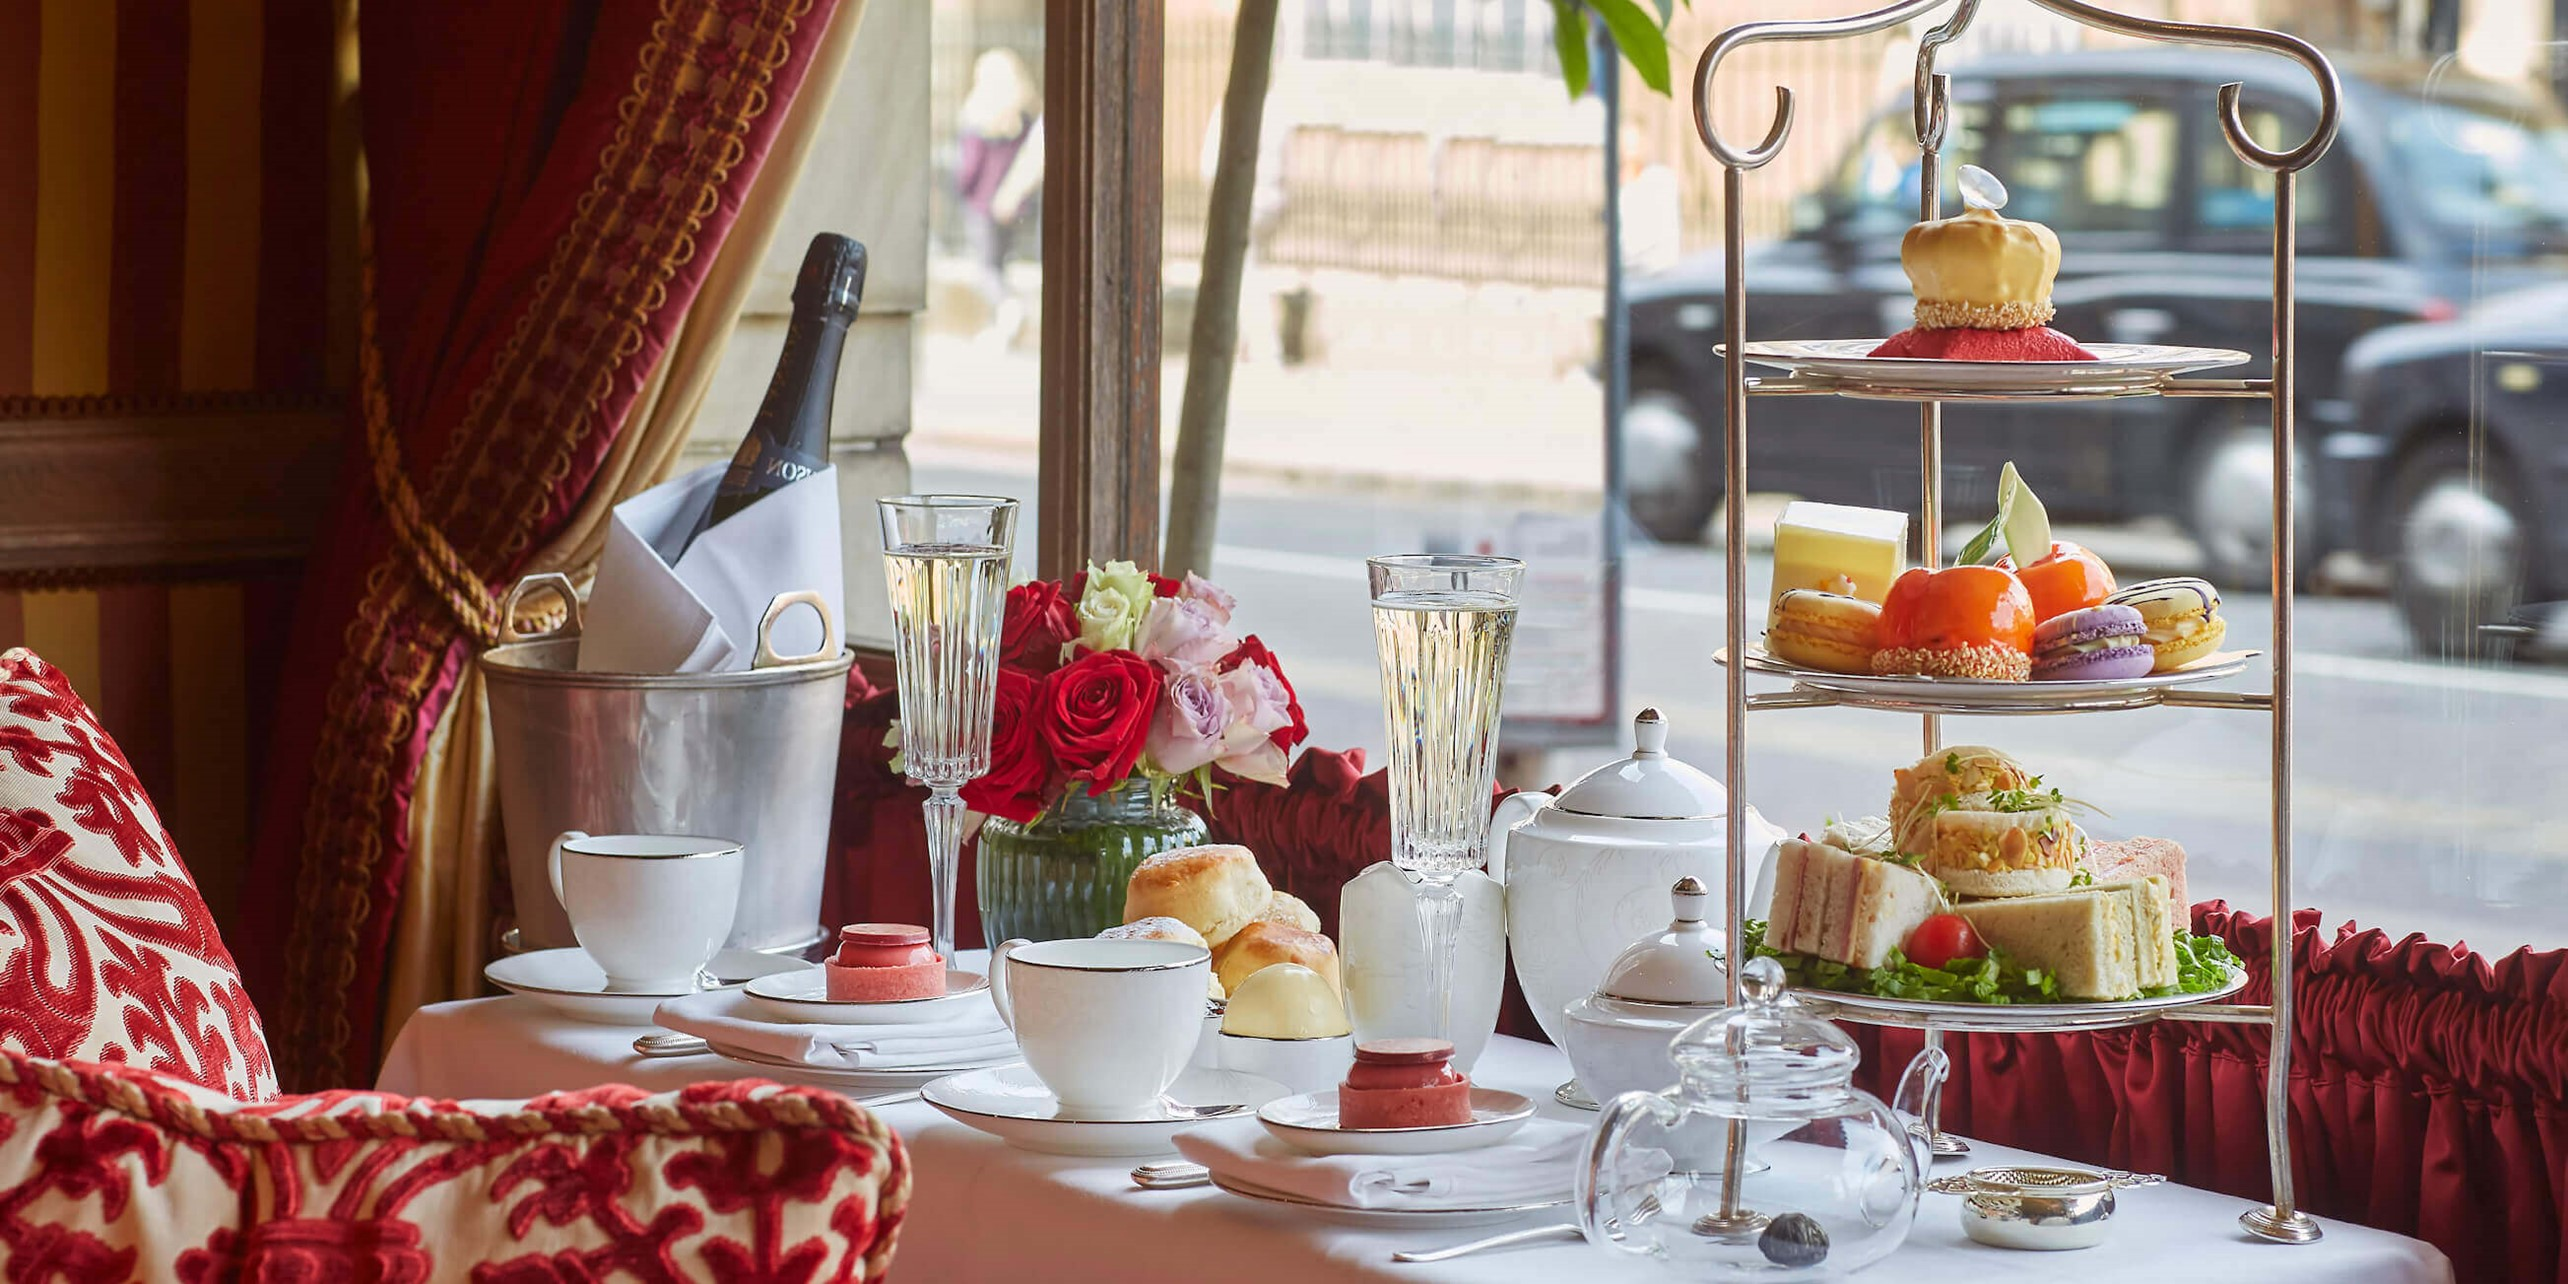 Royal Afternoon Tea at The Ruben at The Palace Hotel